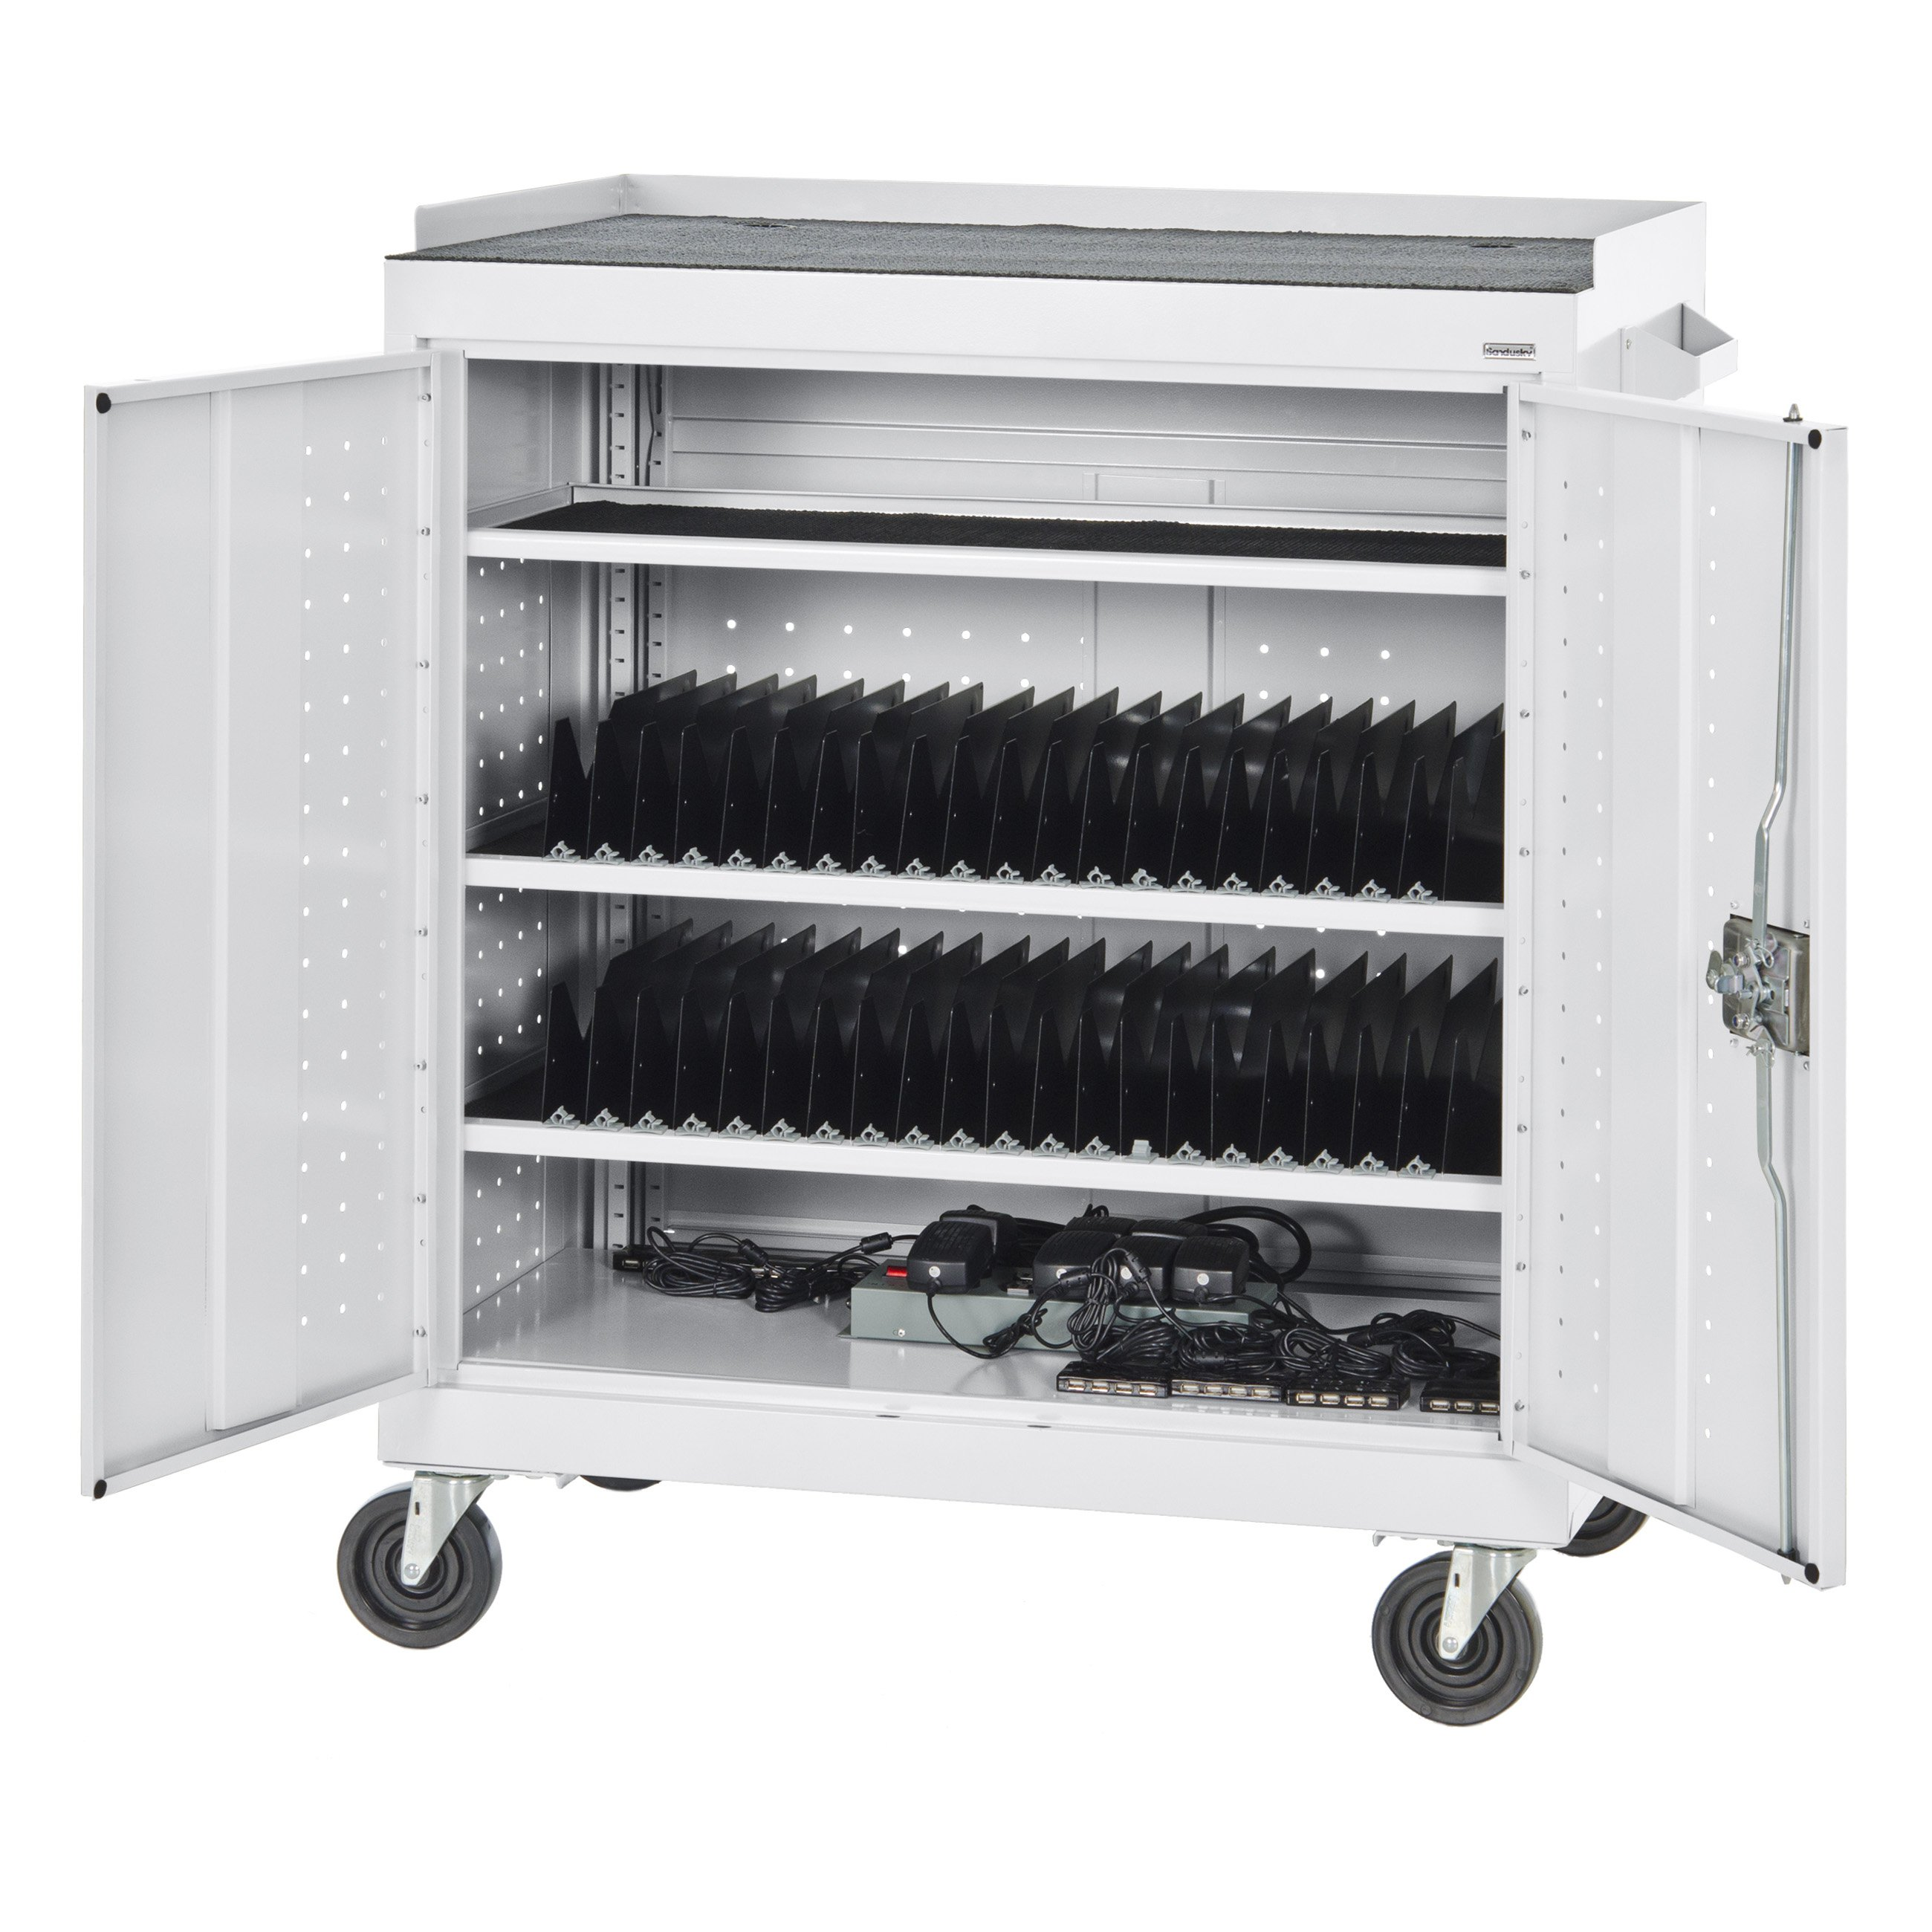 Sandusky Lee Mobile Tablet Storage Cart with Sync / Charging Hubs and Power Strip